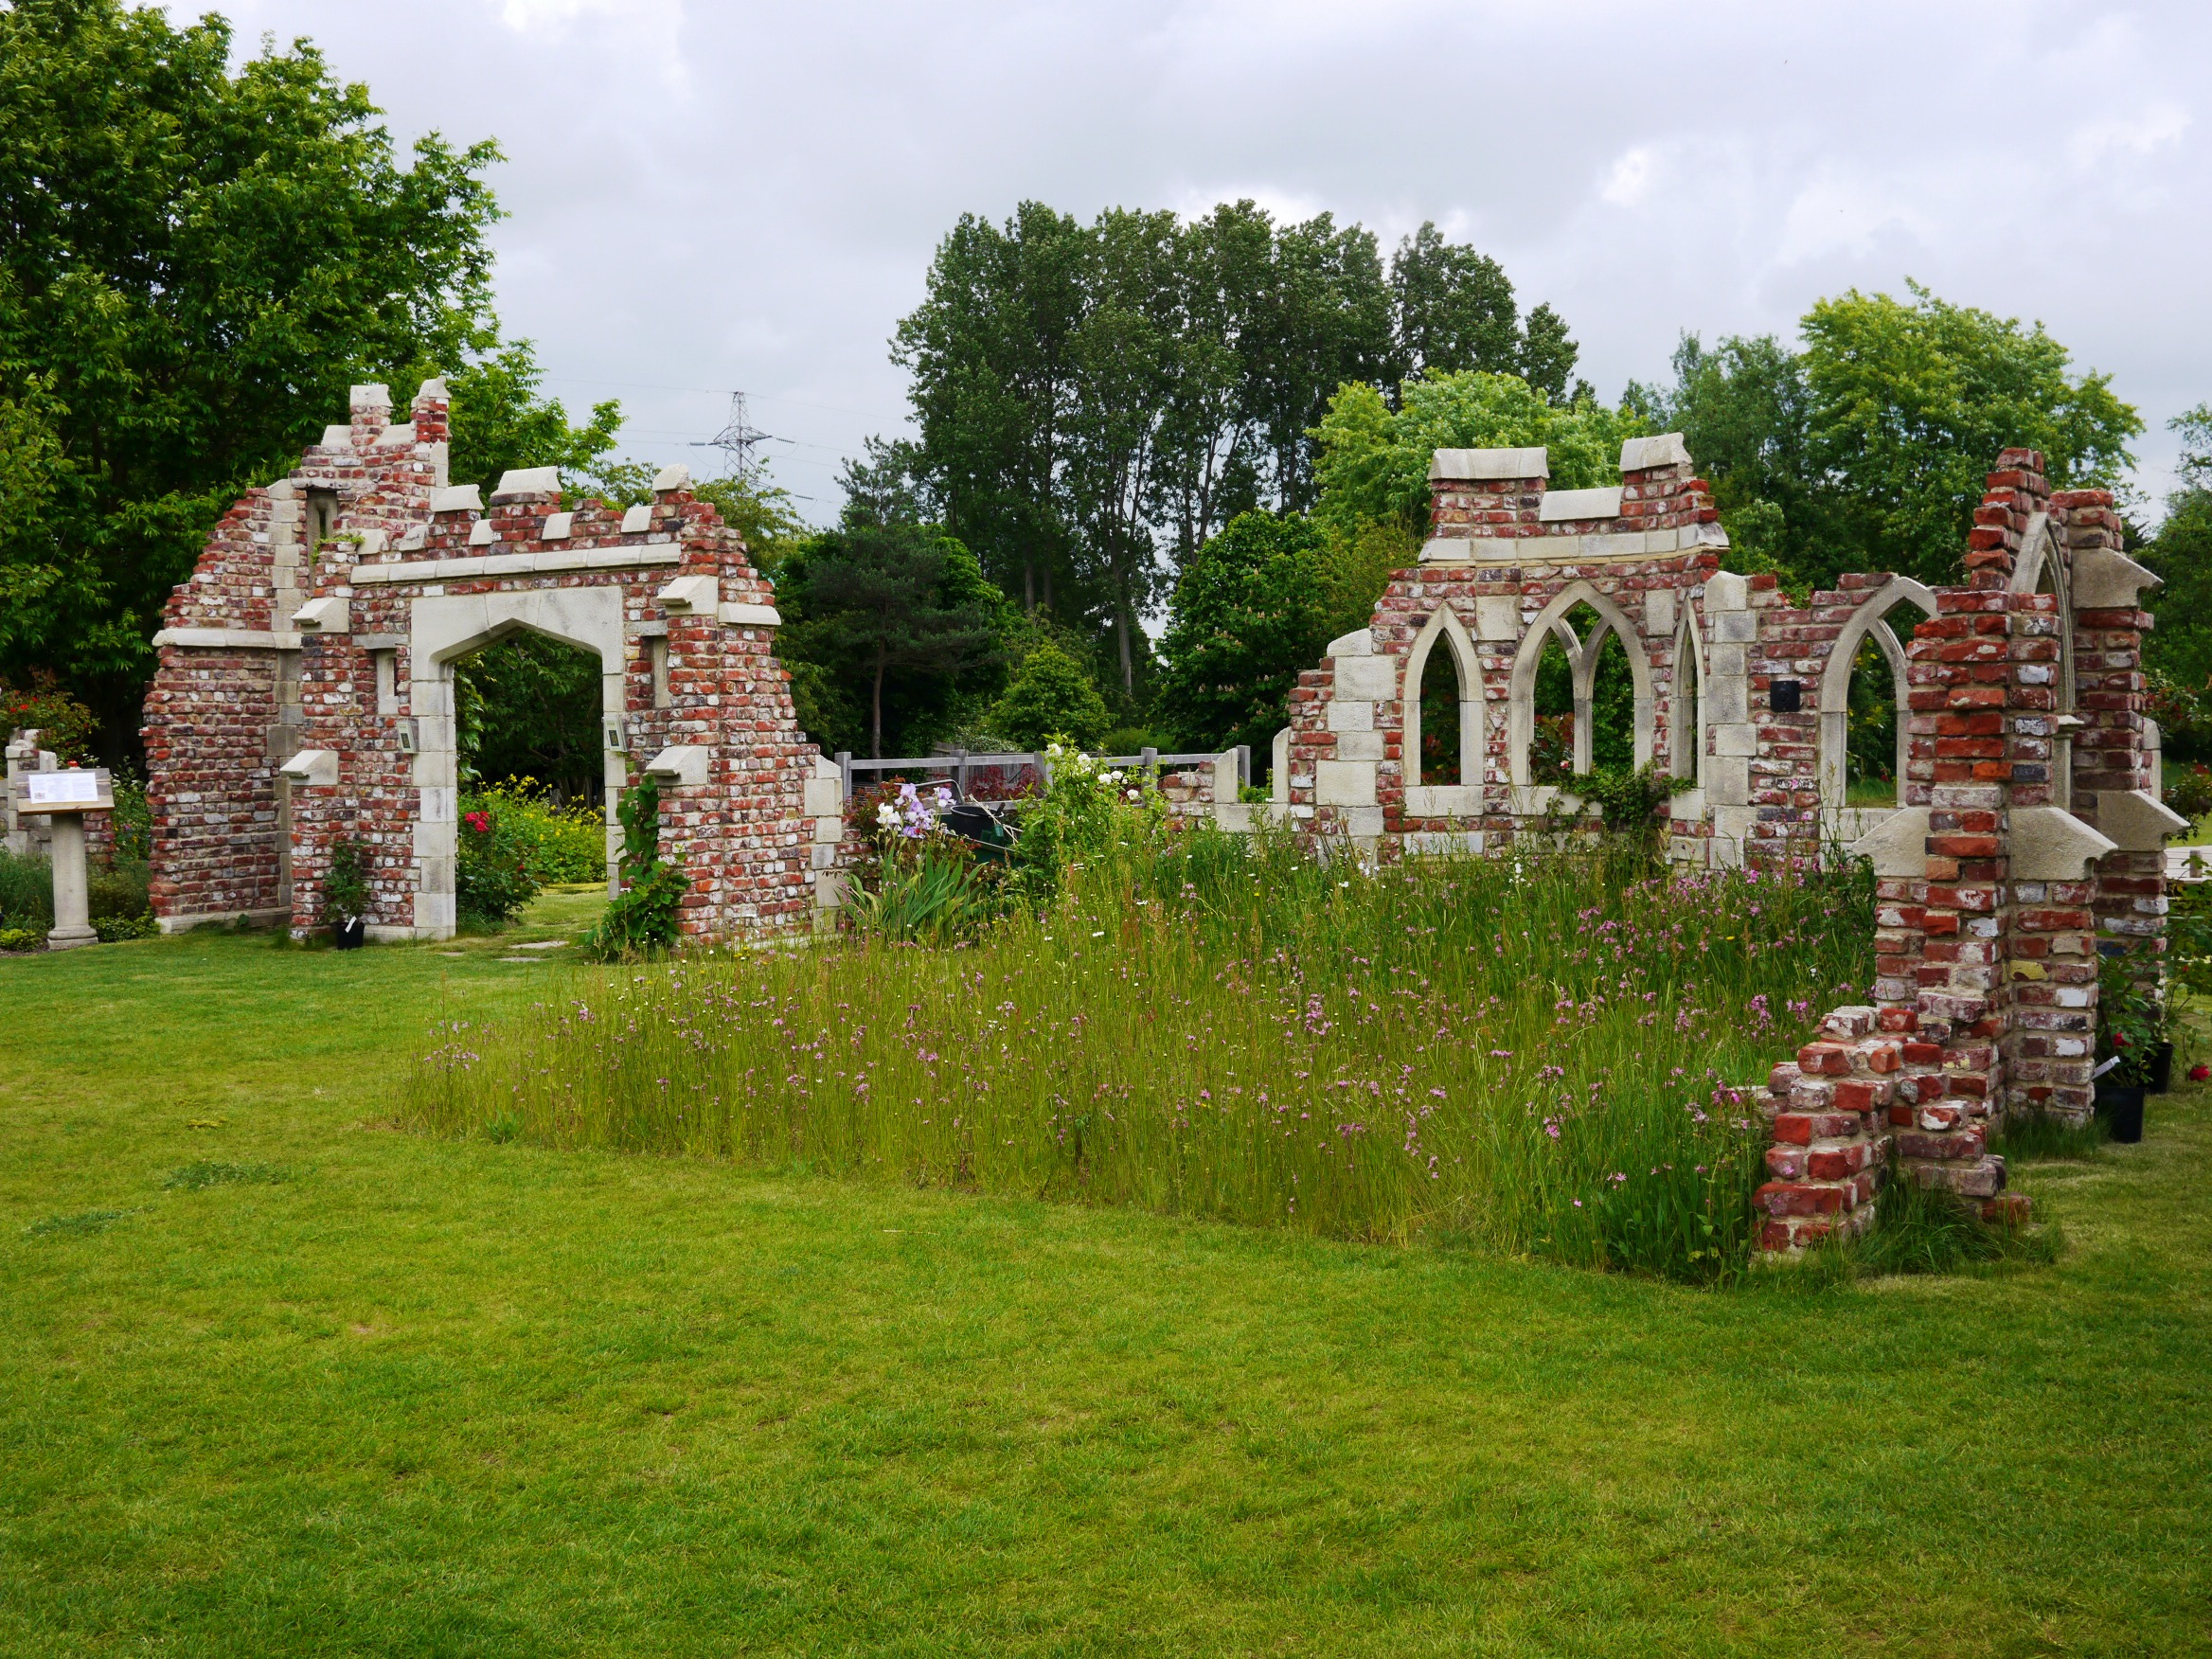 Ruins at Caple Manors Gardens in Enfield UK